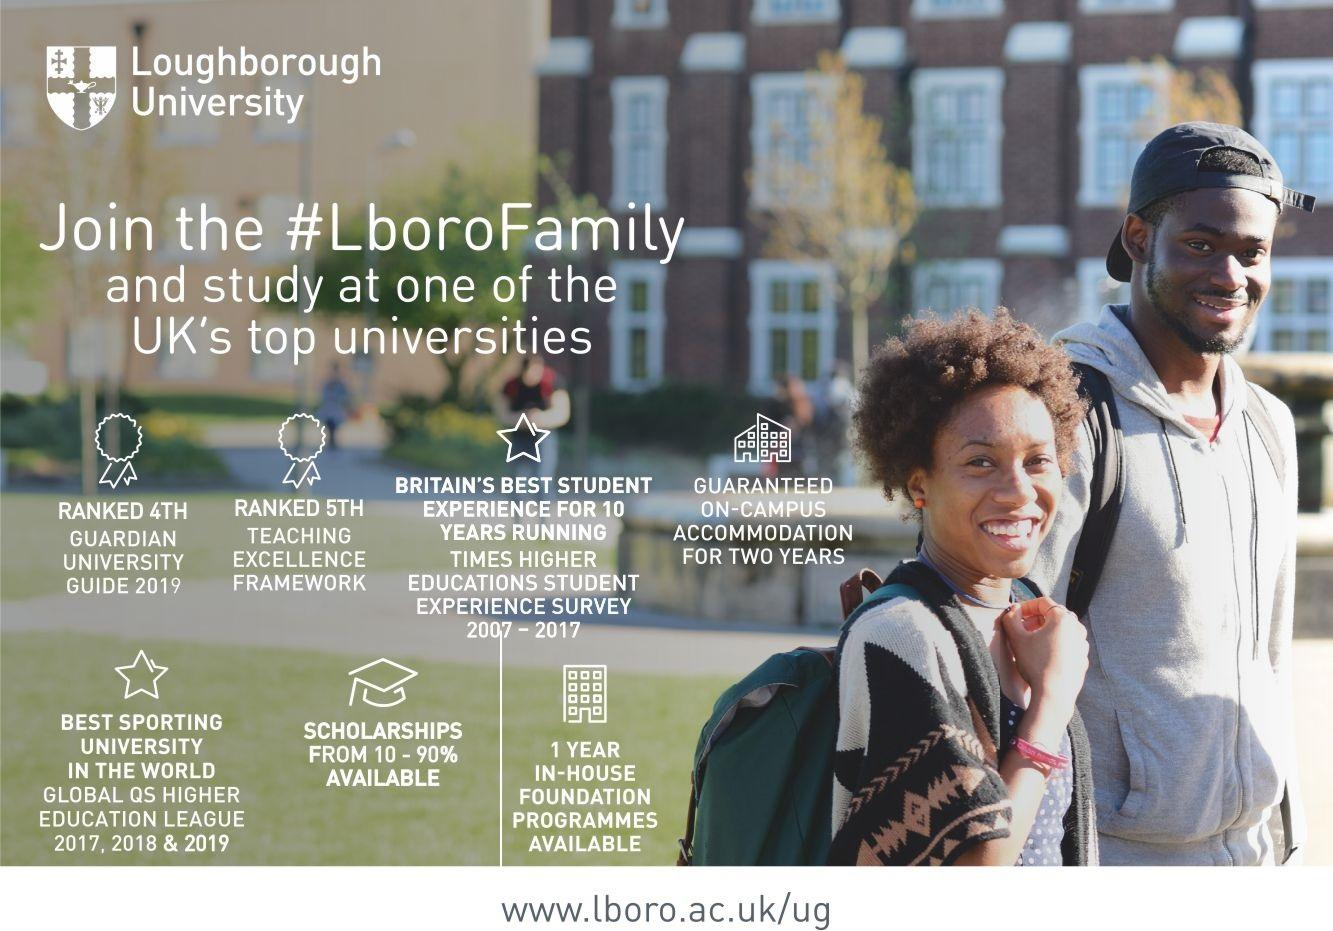 Loughborough University Scholarships 2020